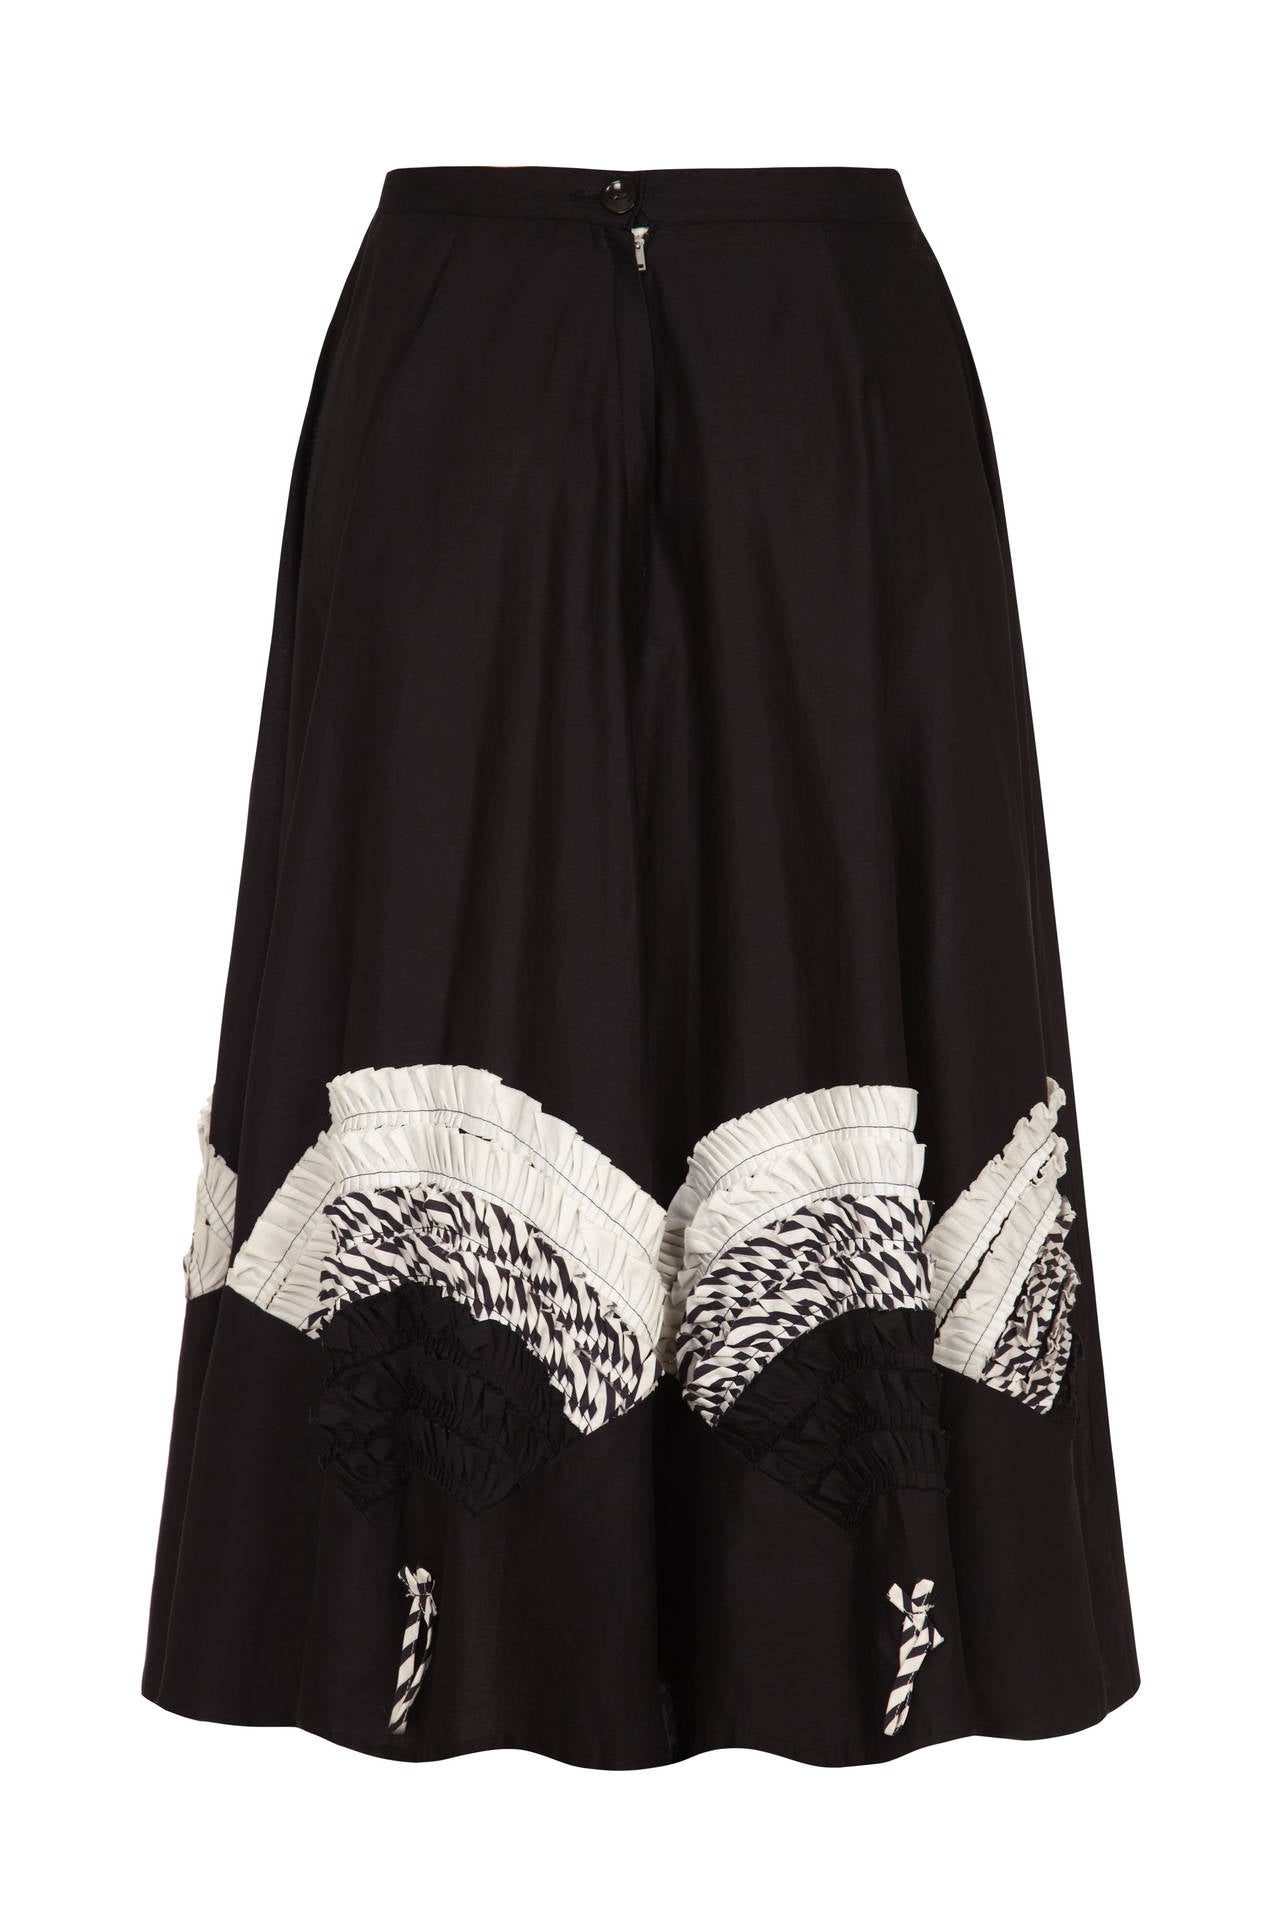 Fun 1950s full black cotton circle skirt with lovely monochrome pleated applique all around the hem in fan motifs.  This piece fastens at the back with a zip and button and is in excellent condition.